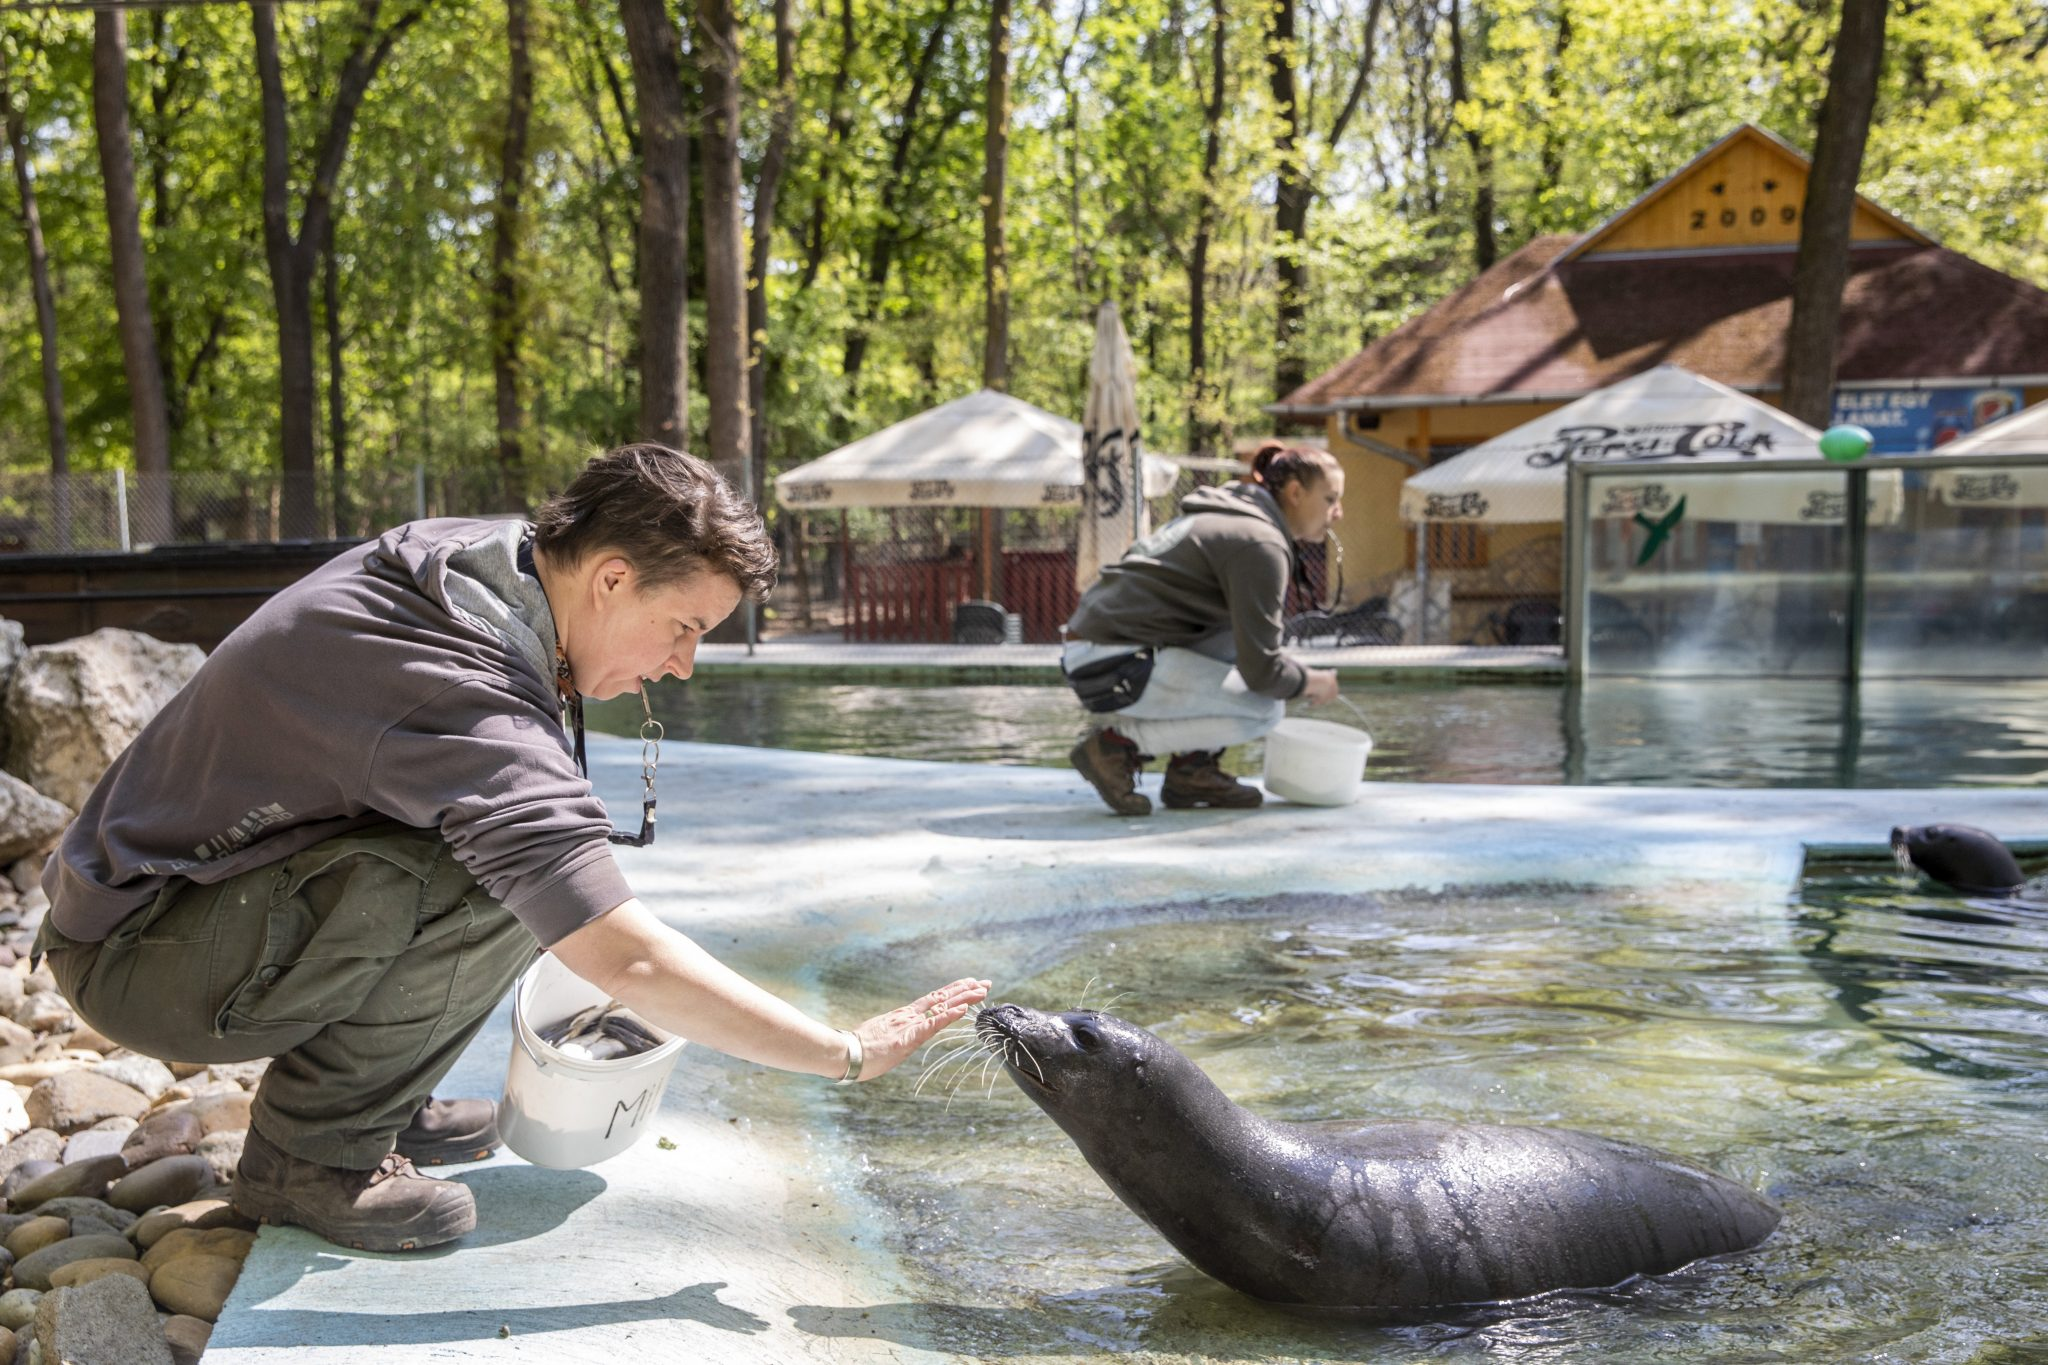 Coronavirus: Hungarian Zoos Fighting for Survival, Ask for Help to Feed and Care for Animals post's picture